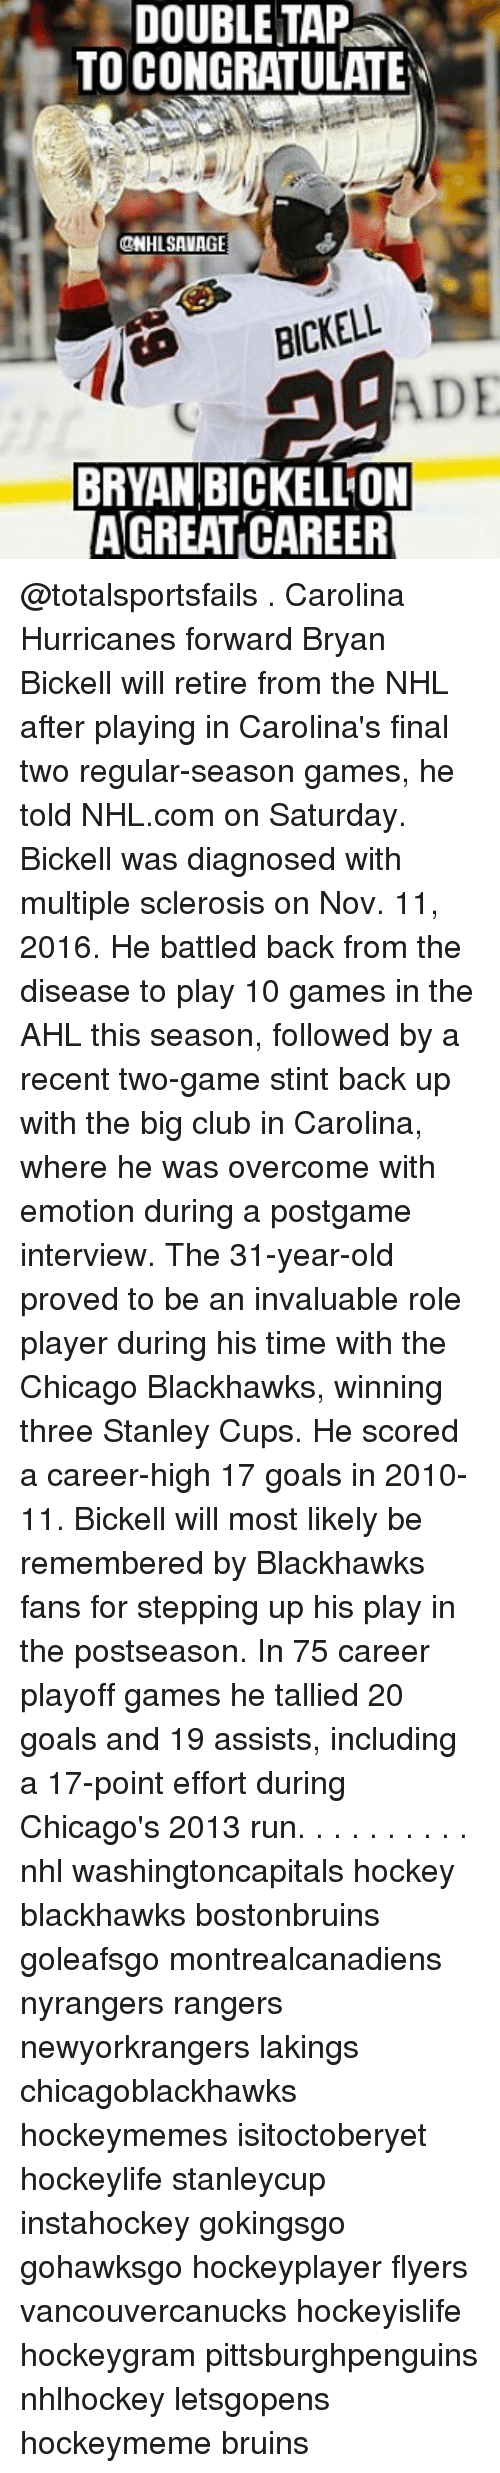 Blackhawks, Chicago, and Club: DOUBLE TAP  TO CONGRATULATE  @NHL SAVAGE  ADE  BRYAN BICKELLON  AGREAT CAREER @totalsportsfails . Carolina Hurricanes forward Bryan Bickell will retire from the NHL after playing in Carolina's final two regular-season games, he told NHL.com on Saturday. Bickell was diagnosed with multiple sclerosis on Nov. 11, 2016. He battled back from the disease to play 10 games in the AHL this season, followed by a recent two-game stint back up with the big club in Carolina, where he was overcome with emotion during a postgame interview. The 31-year-old proved to be an invaluable role player during his time with the Chicago Blackhawks, winning three Stanley Cups. He scored a career-high 17 goals in 2010-11. Bickell will most likely be remembered by Blackhawks fans for stepping up his play in the postseason. In 75 career playoff games he tallied 20 goals and 19 assists, including a 17-point effort during Chicago's 2013 run. . . . . . . . . . nhl washingtoncapitals hockey blackhawks bostonbruins goleafsgo montrealcanadiens nyrangers rangers newyorkrangers lakings chicagoblackhawks hockeymemes isitoctoberyet hockeylife stanleycup instahockey gokingsgo gohawksgo hockeyplayer flyers vancouvercanucks hockeyislife hockeygram pittsburghpenguins nhlhockey letsgopens hockeymeme bruins